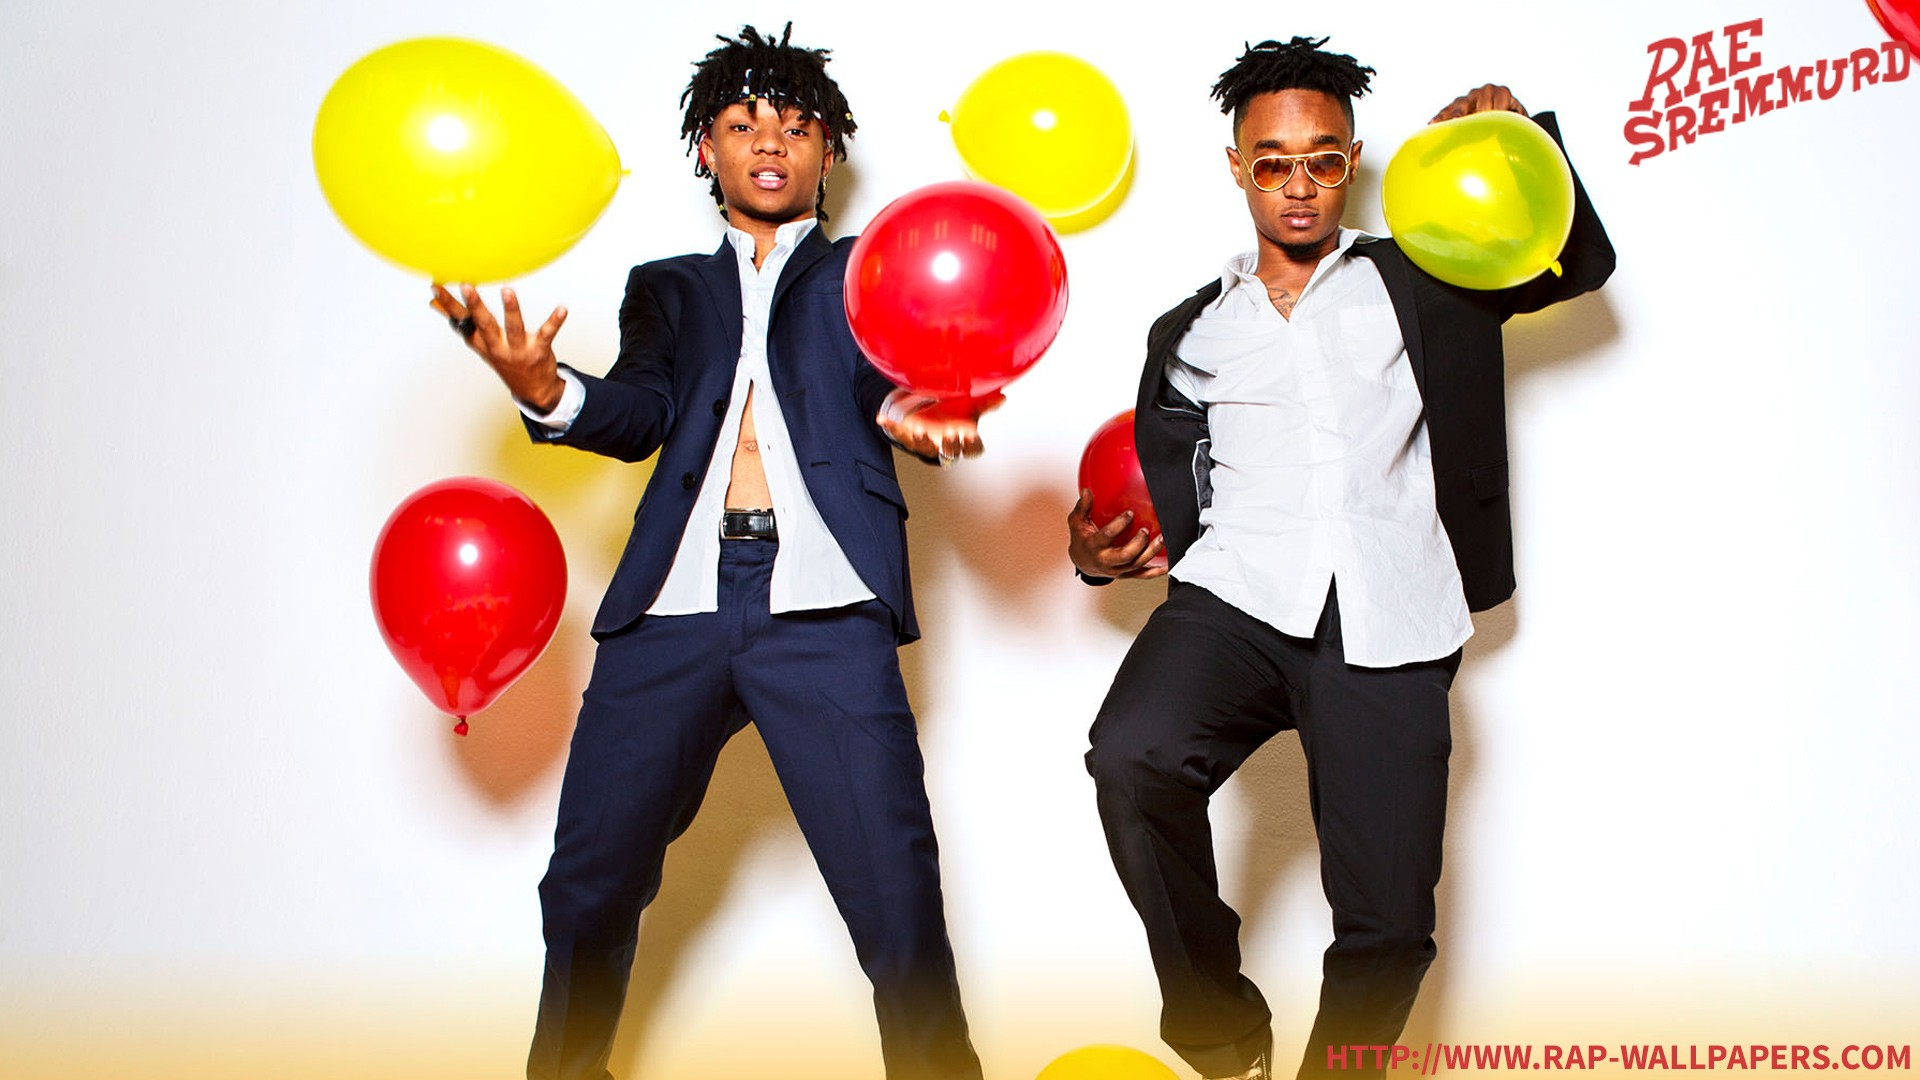 rae sremmurd wallpaper for tablets - photo #12